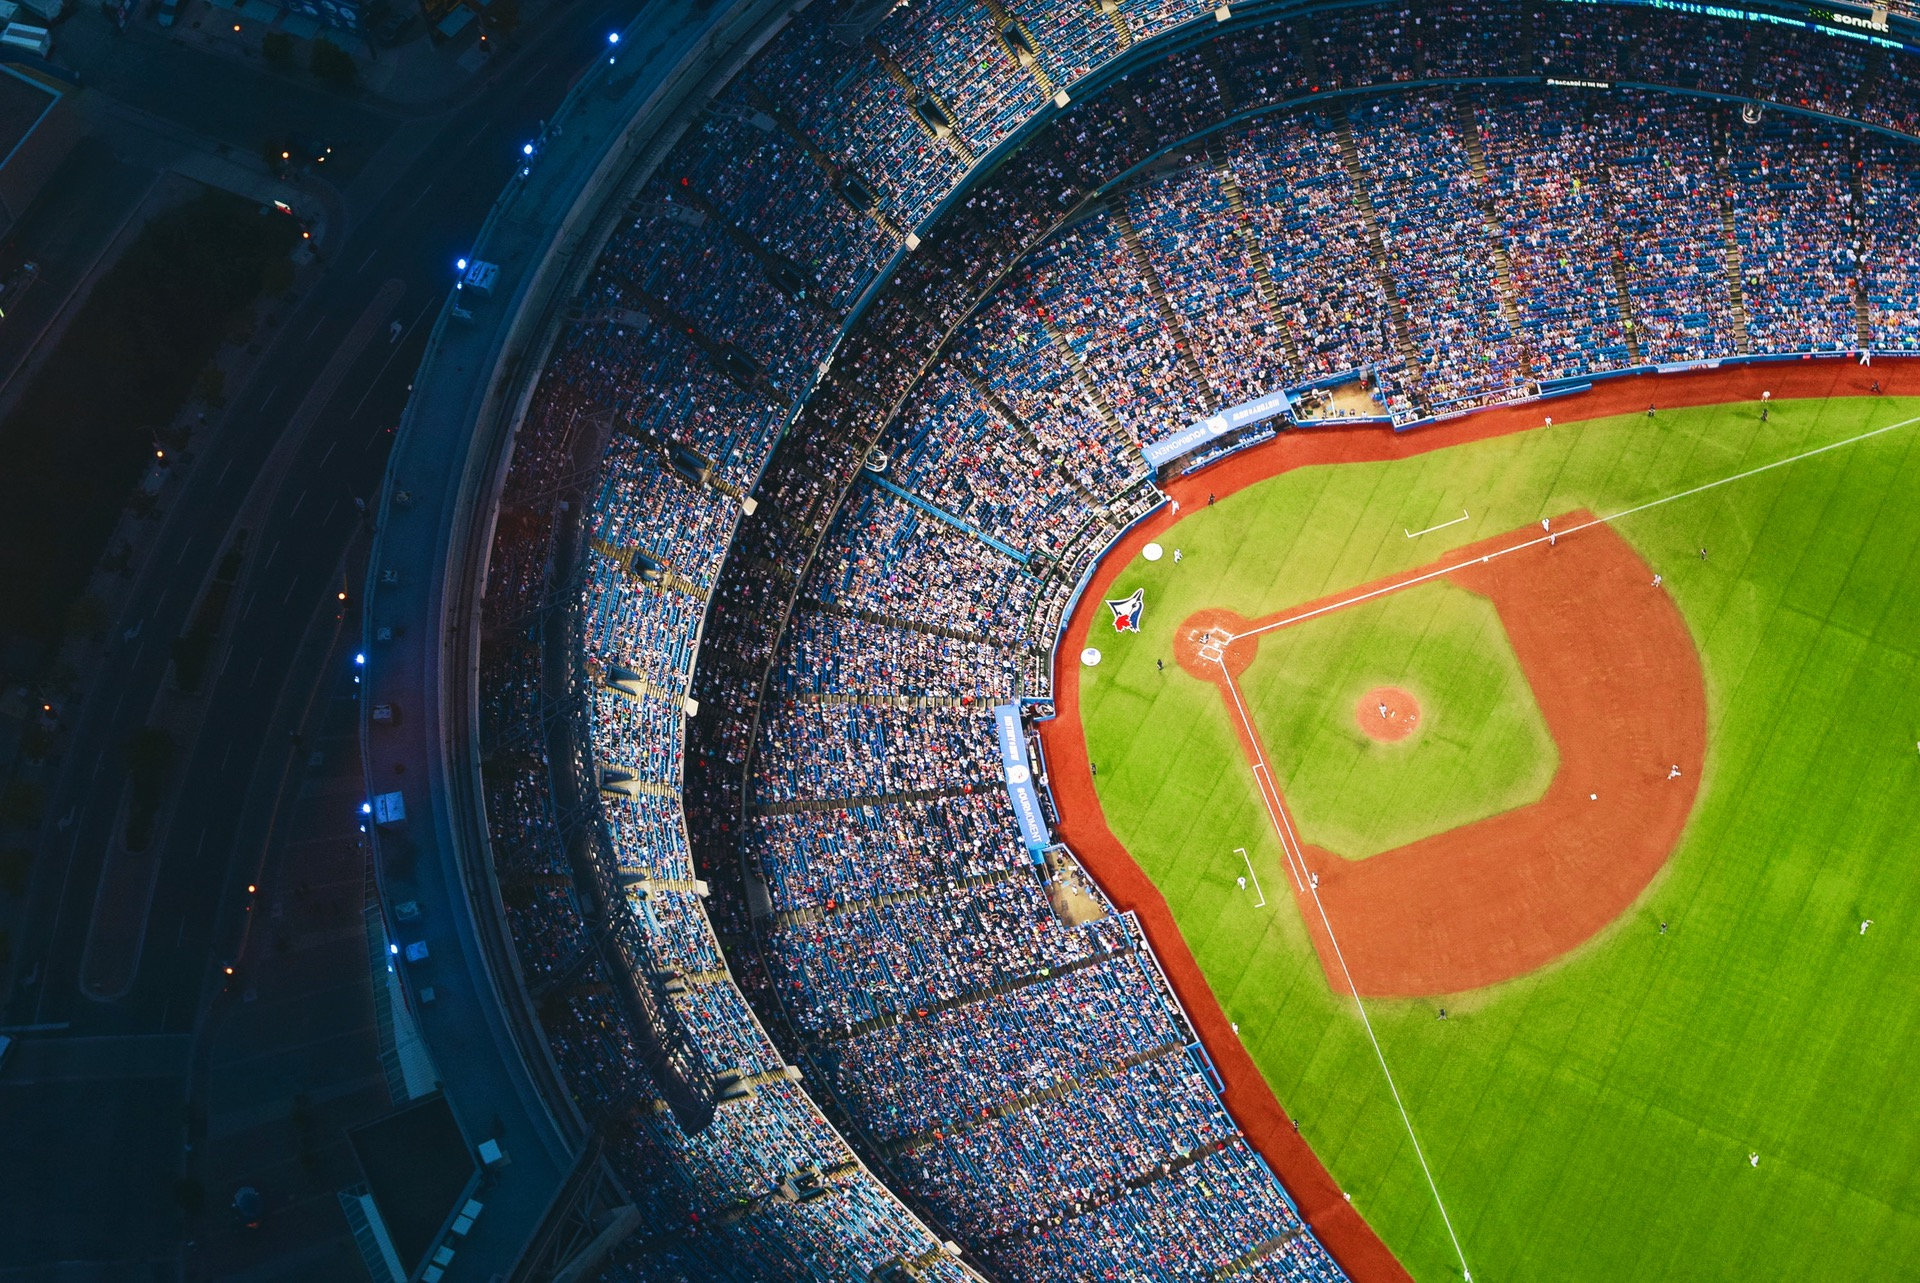 LED Stadium lights, stadium lights toronto, toronto stadium lights, toronto LED lights, LED lighting Toronto